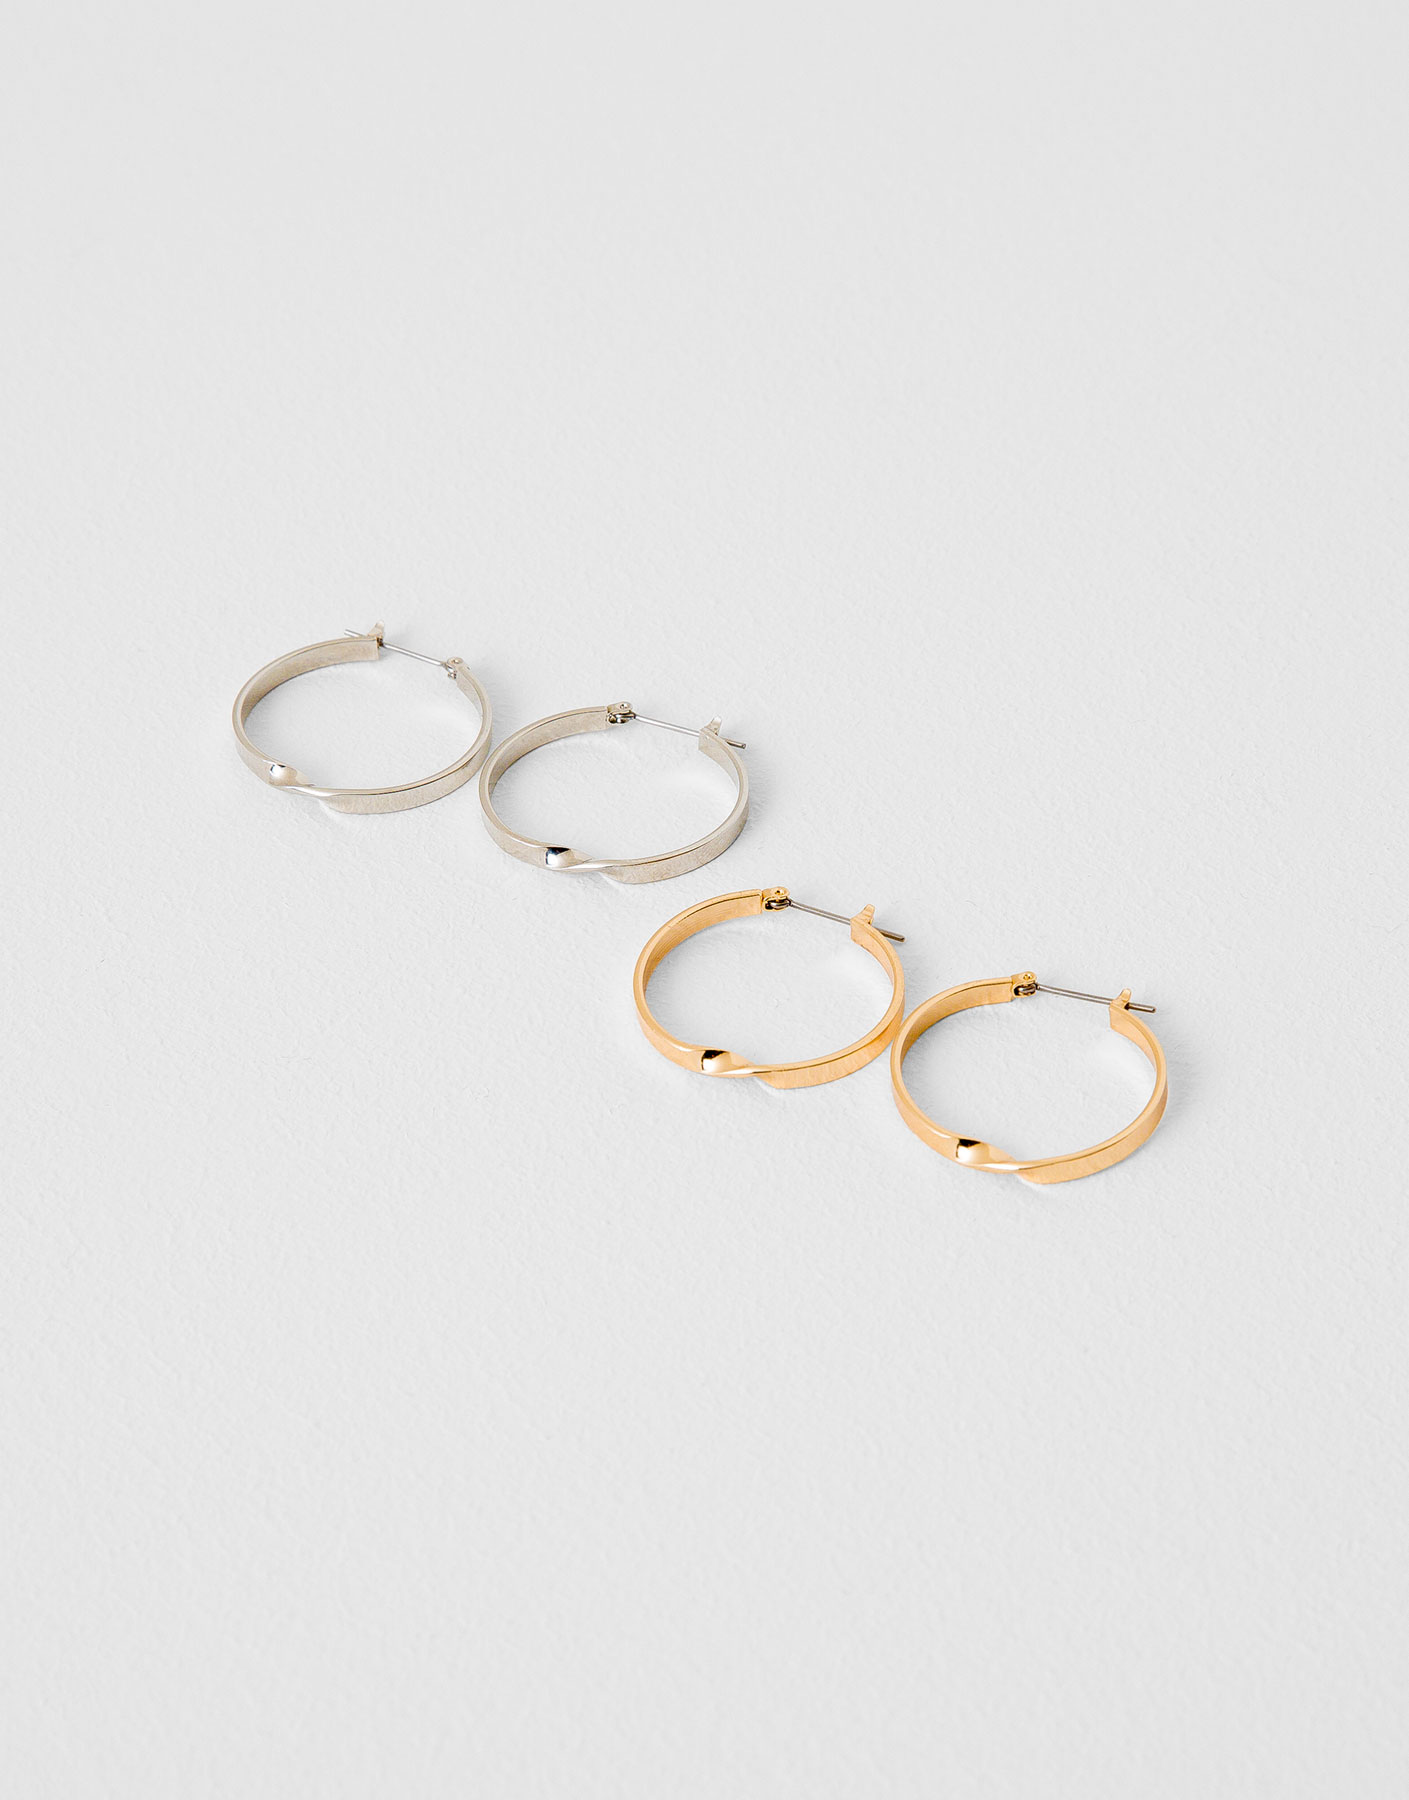 Pack of hoop earrings